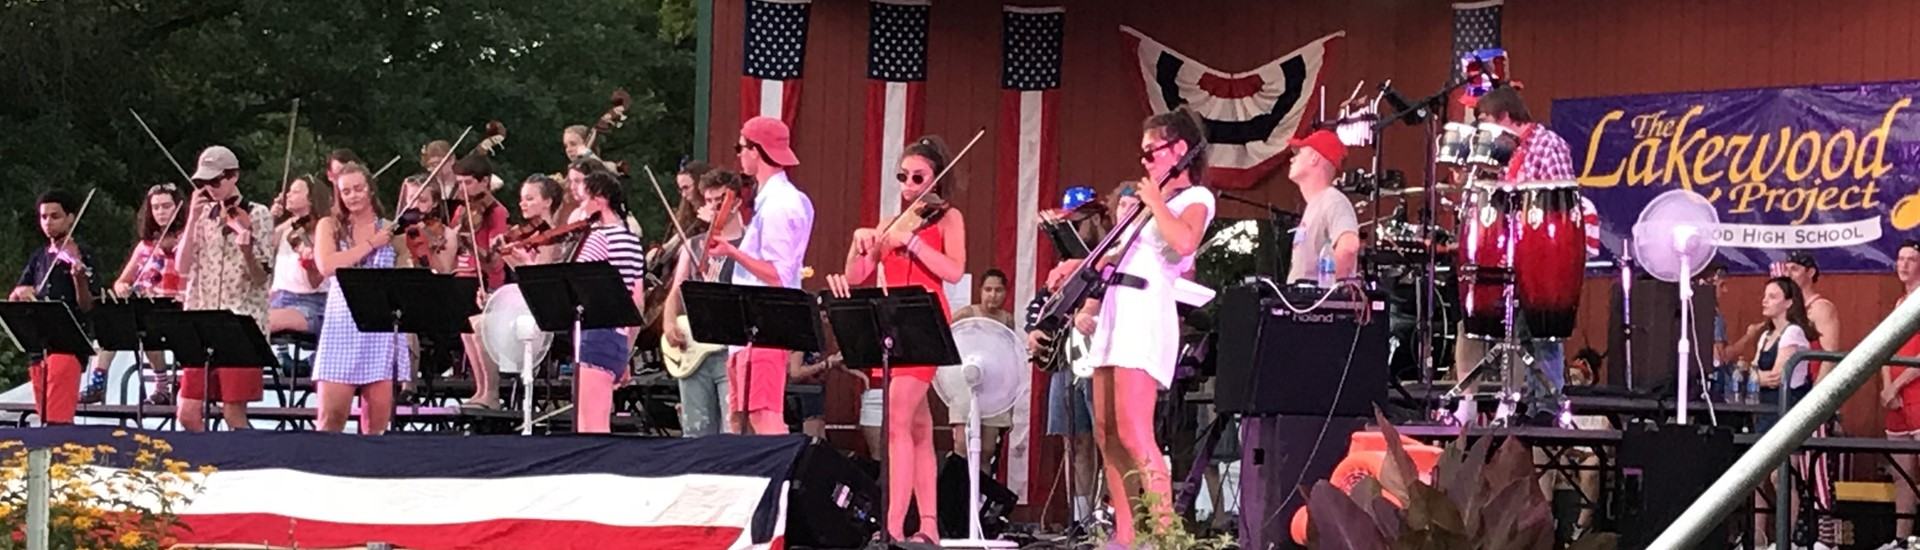 Lakewood Project July Fourth Concert